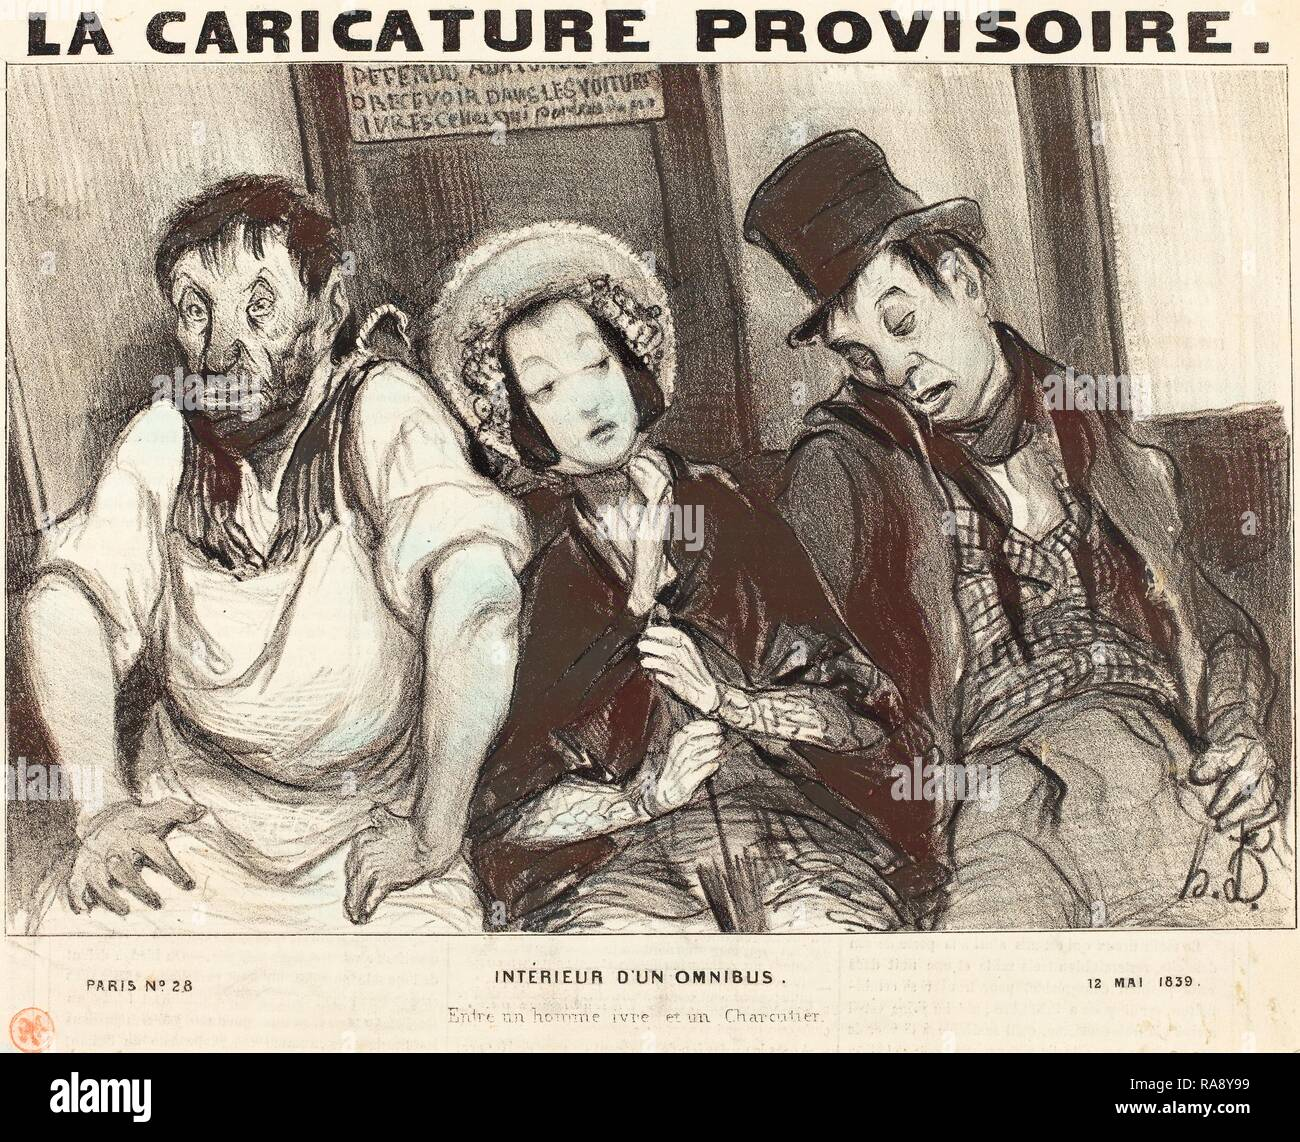 Honoré Daumier (French, 1808 - 1879), Intérieur d'un omnibus, 1839, lithograph on newsprint. Reimagined - Stock Image